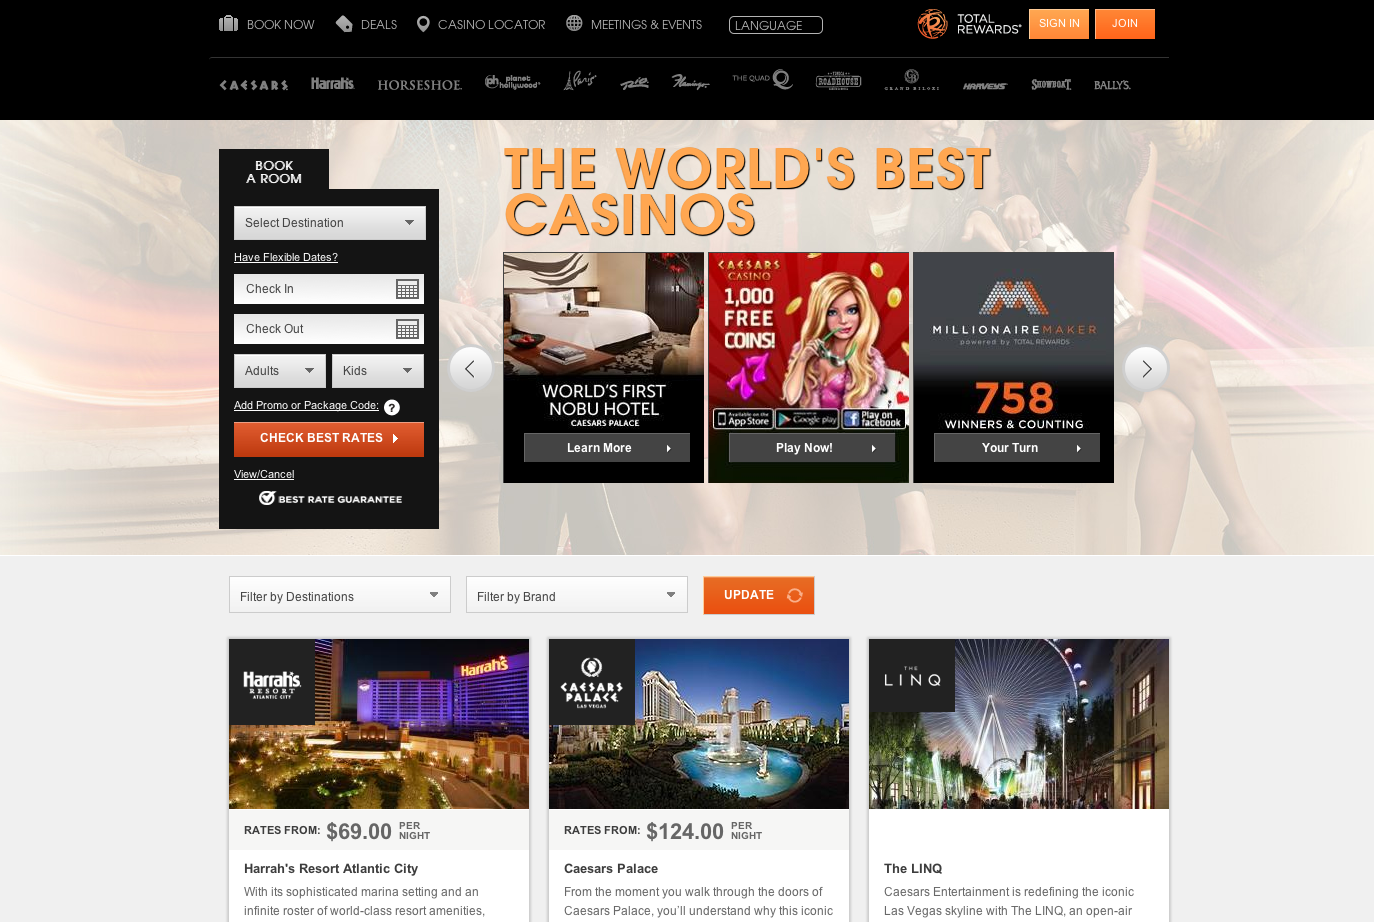 caesars-entertainment-webvisible-group-seo-clientonline-marketing-company